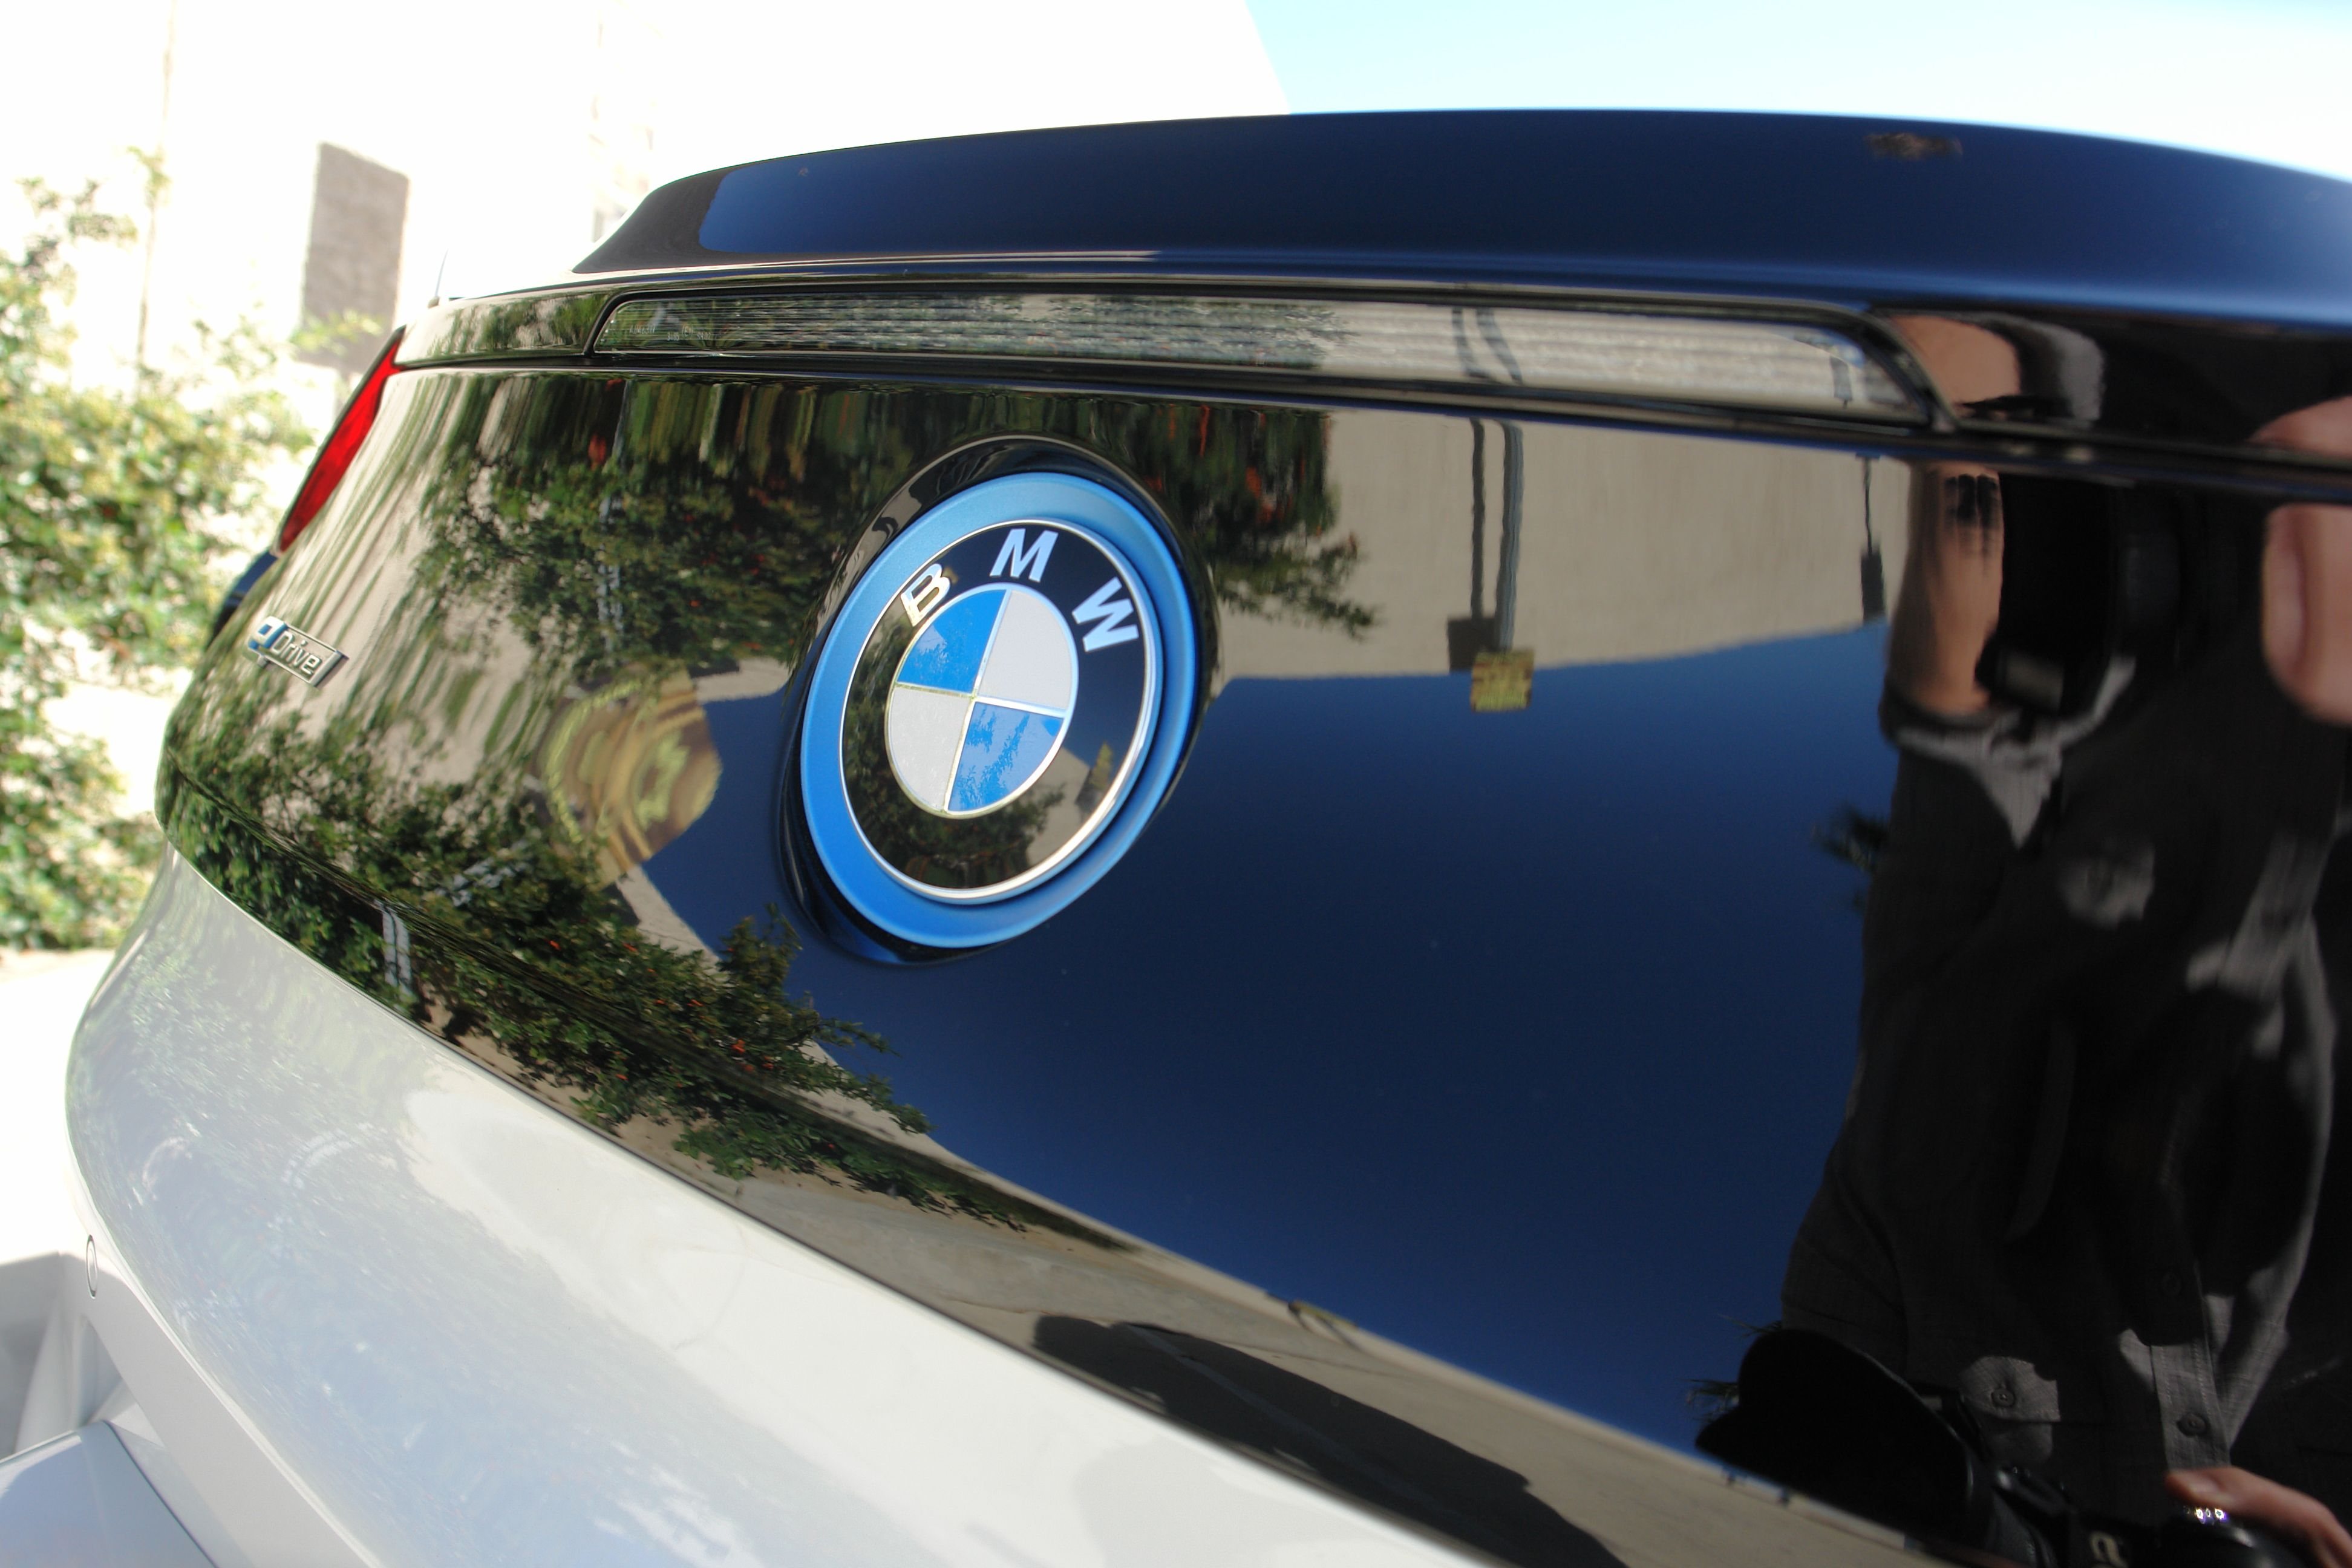 touring san version autocross image a larger views october and bmw name bolts click for diego nuts ca size discussion jpg vbulletin